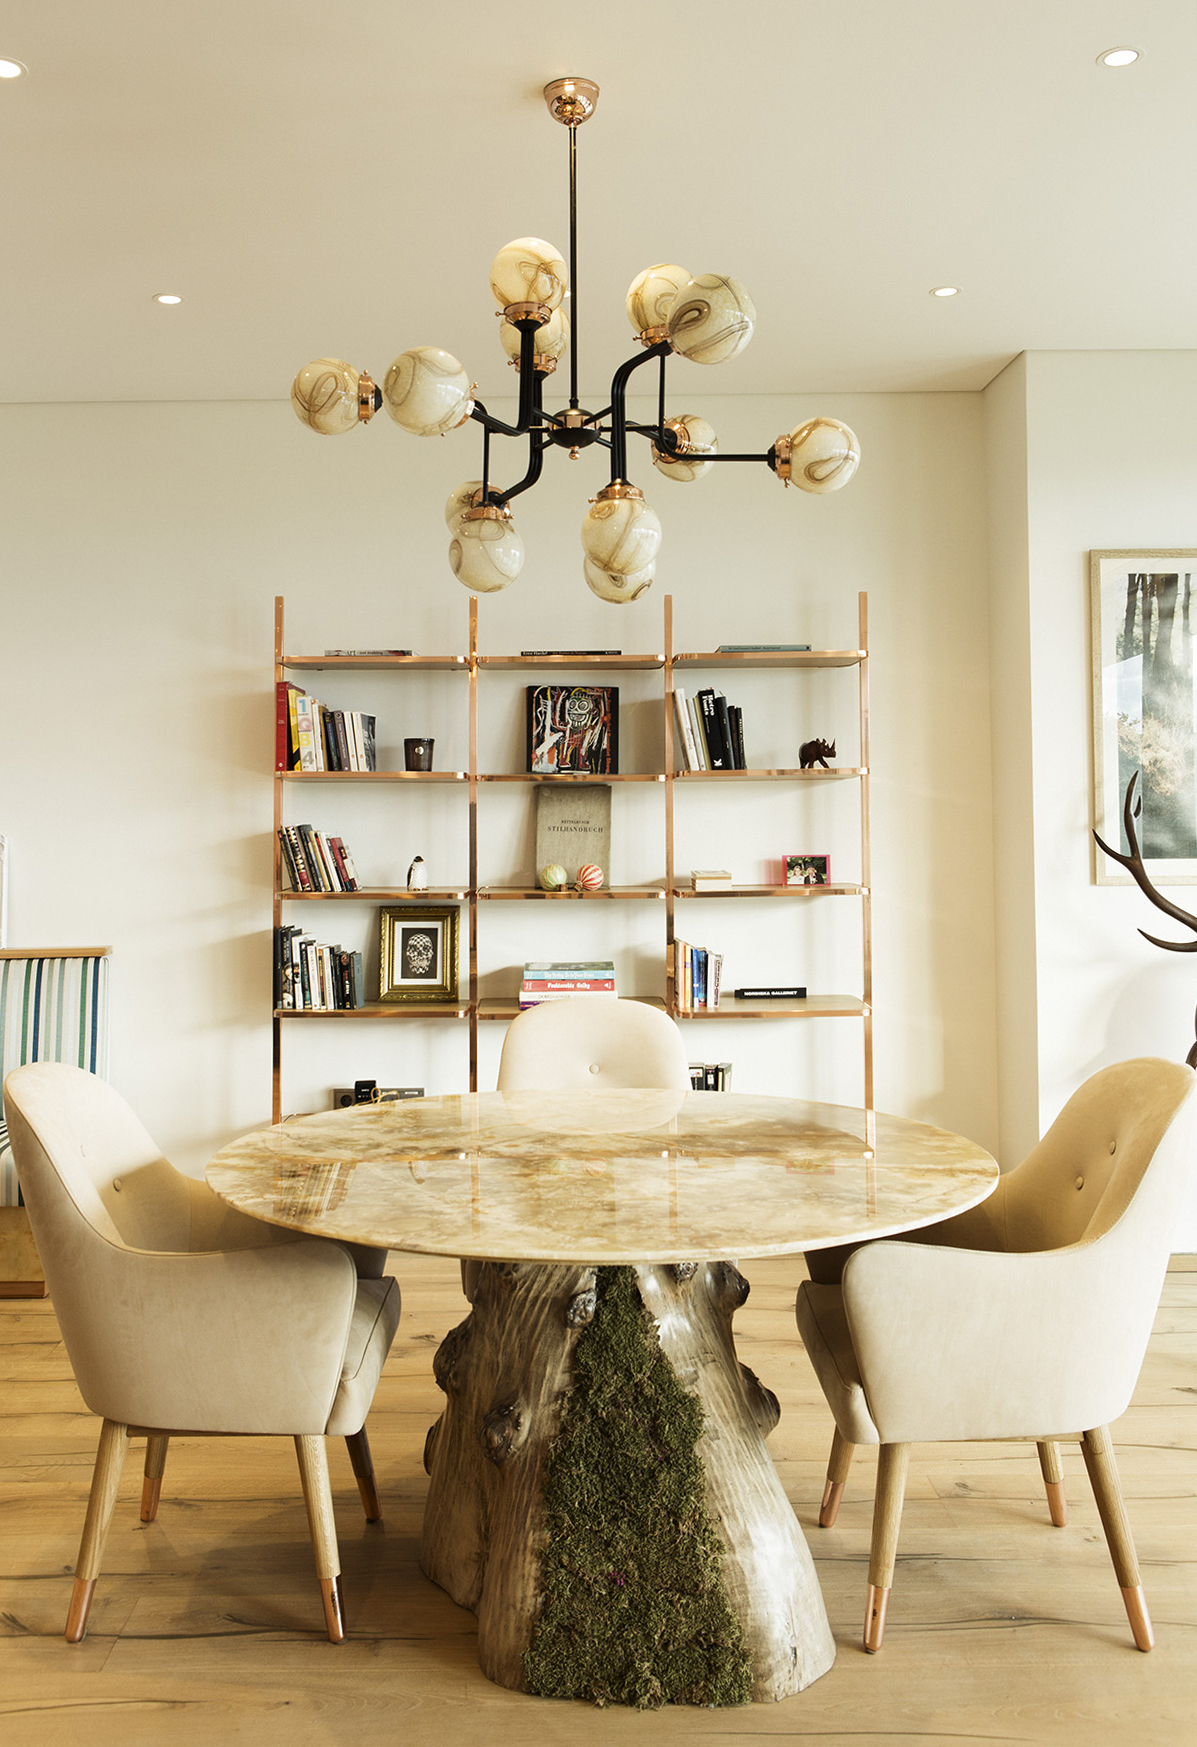 Dining Area. Custom designed onyx marble table with split root and moss, dandy chairs, cyclopedia bookshelf.